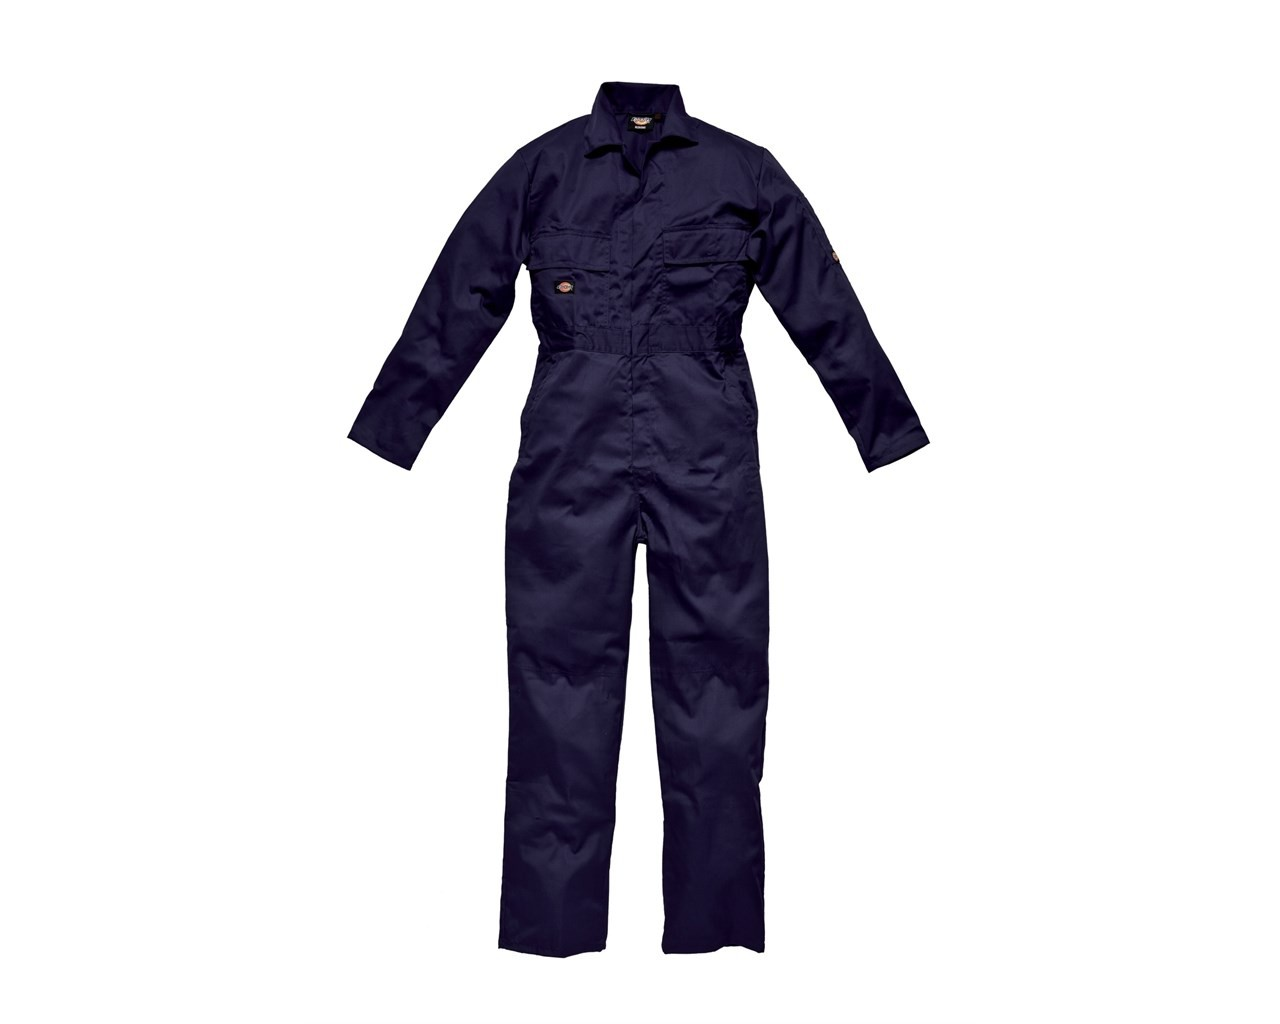 Dickies Redhawk Coverall - Navy Blue - 46 T